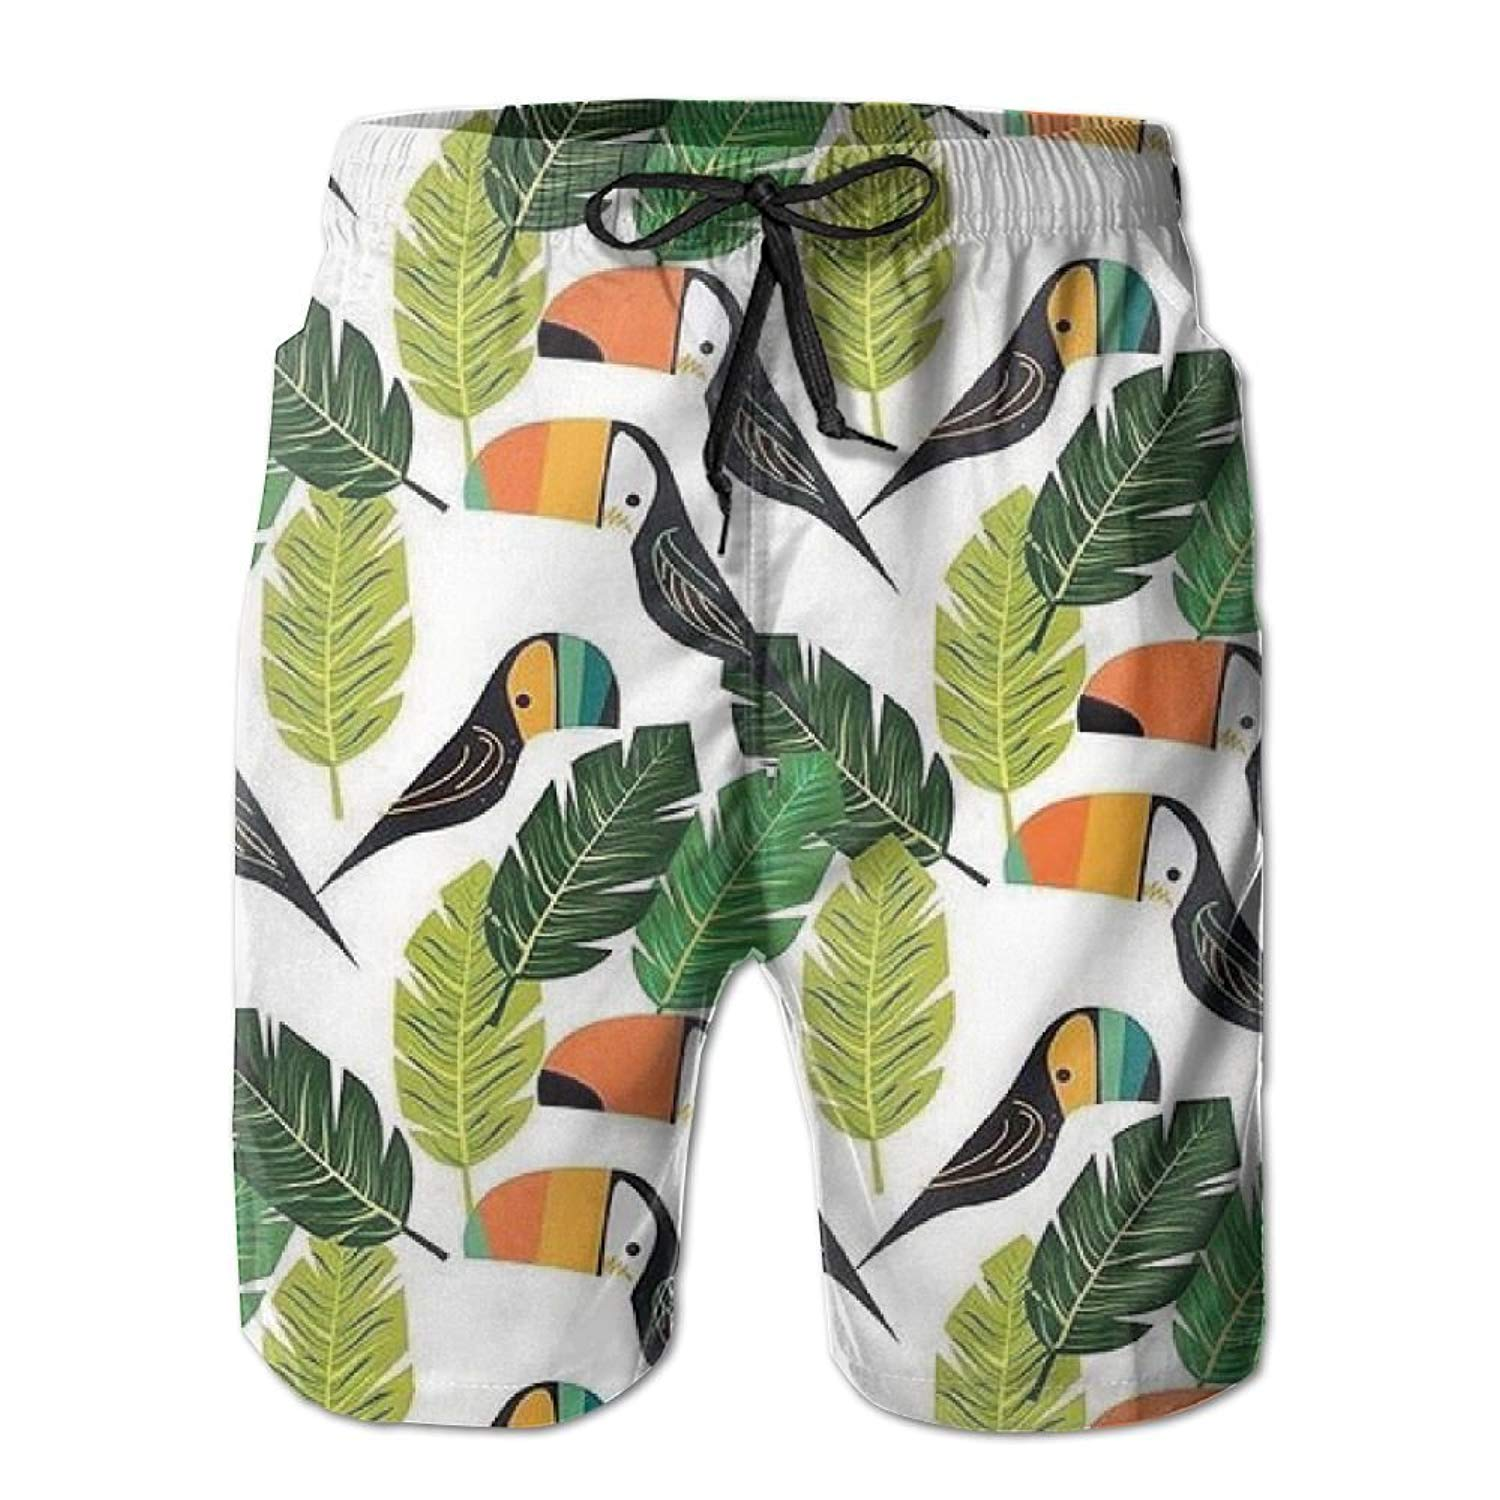 ZAPAGE Mans Quick Dry Board Shorts Tropical Plant Swim Trunk Board Shorts With Pockets